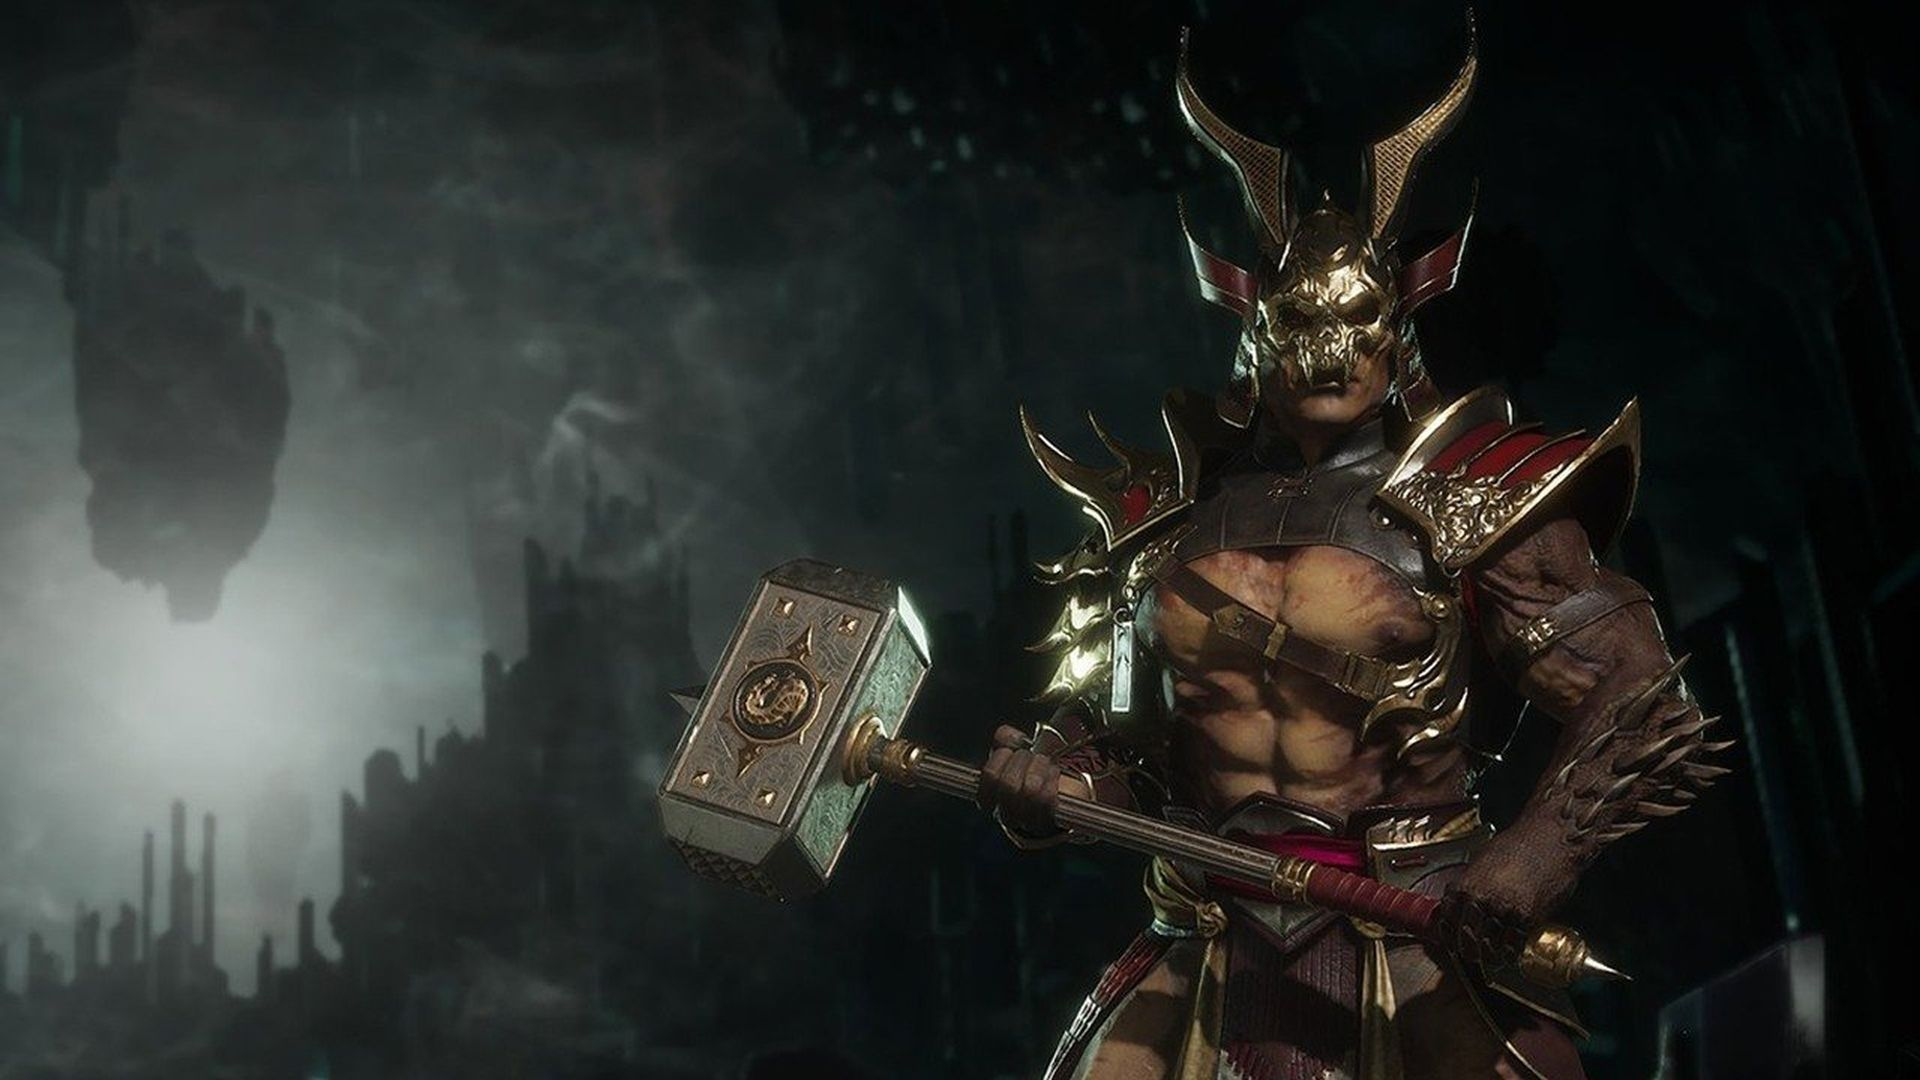 Mortal Kombat 11 Krypt Guide – All Key Item Locations And